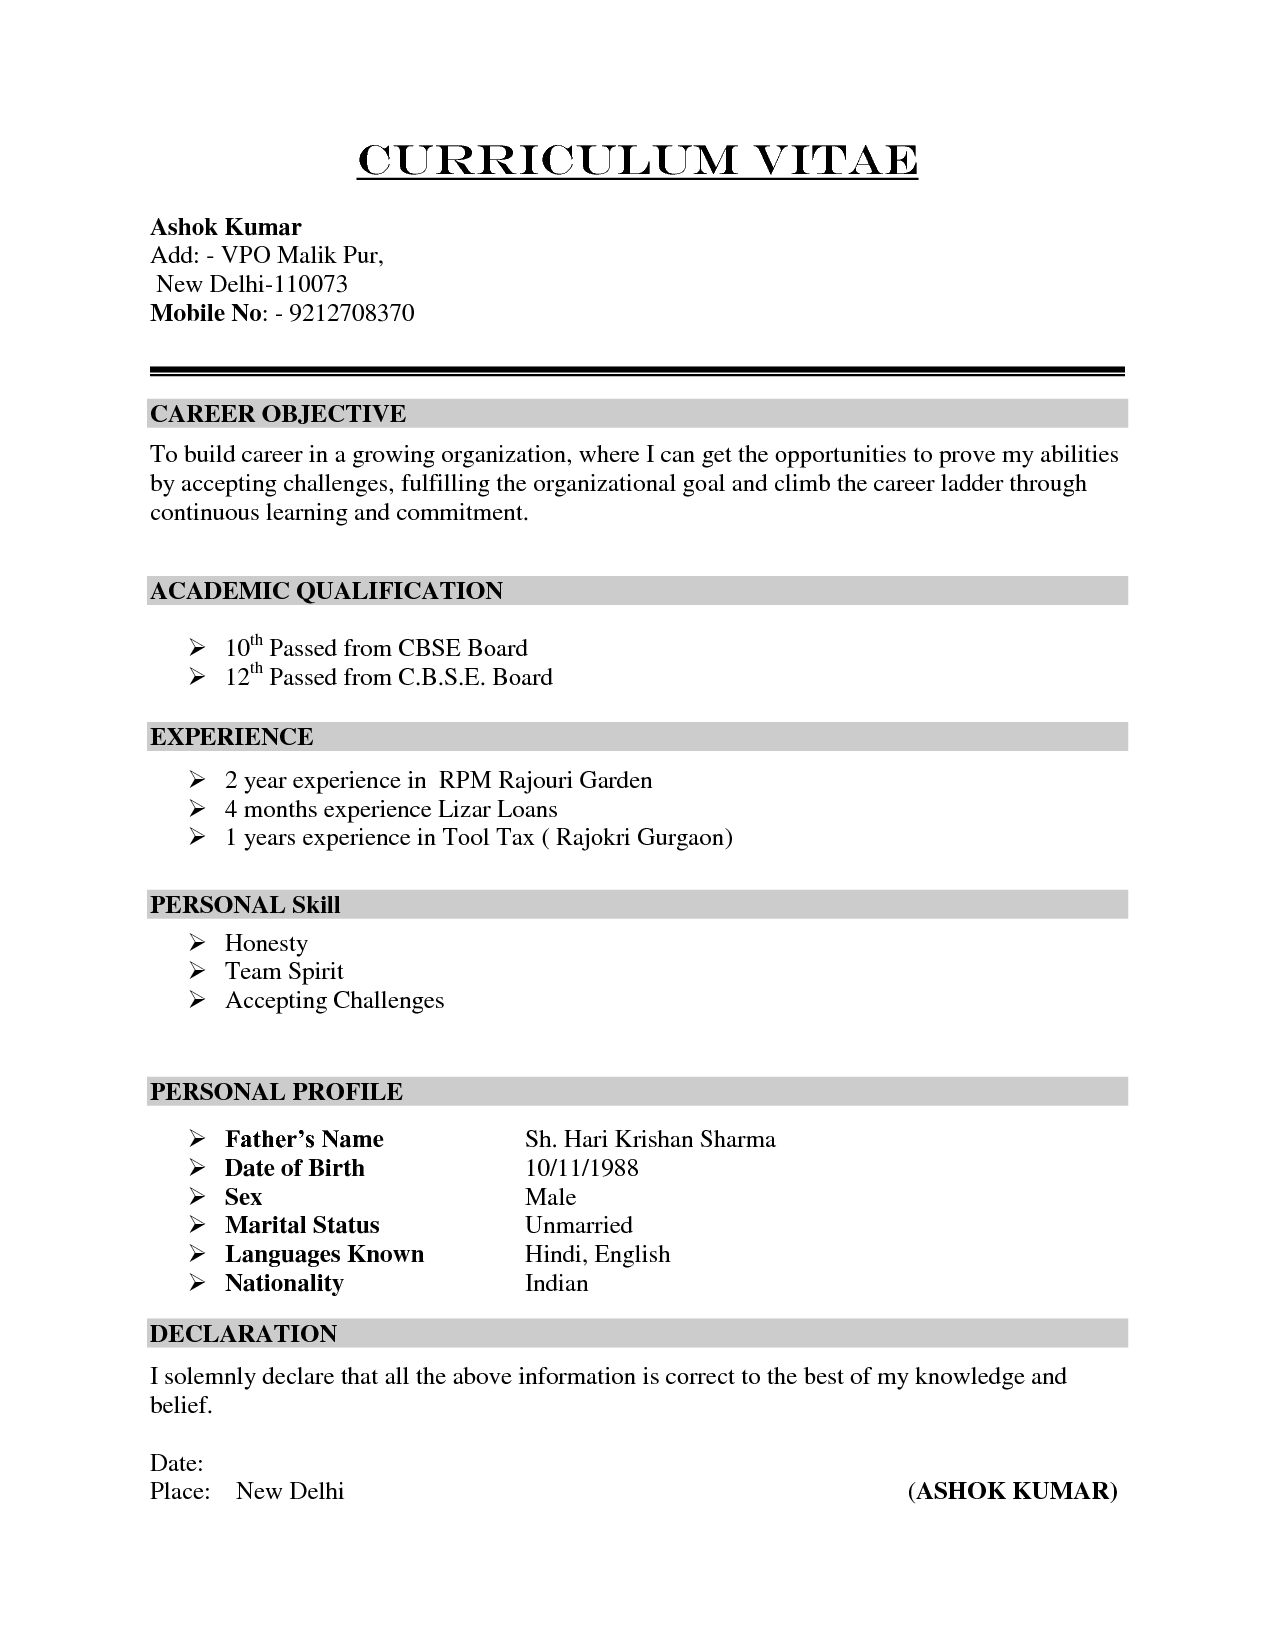 how to make cv resume tk category curriculum vitae post navigation larr how to make a resume